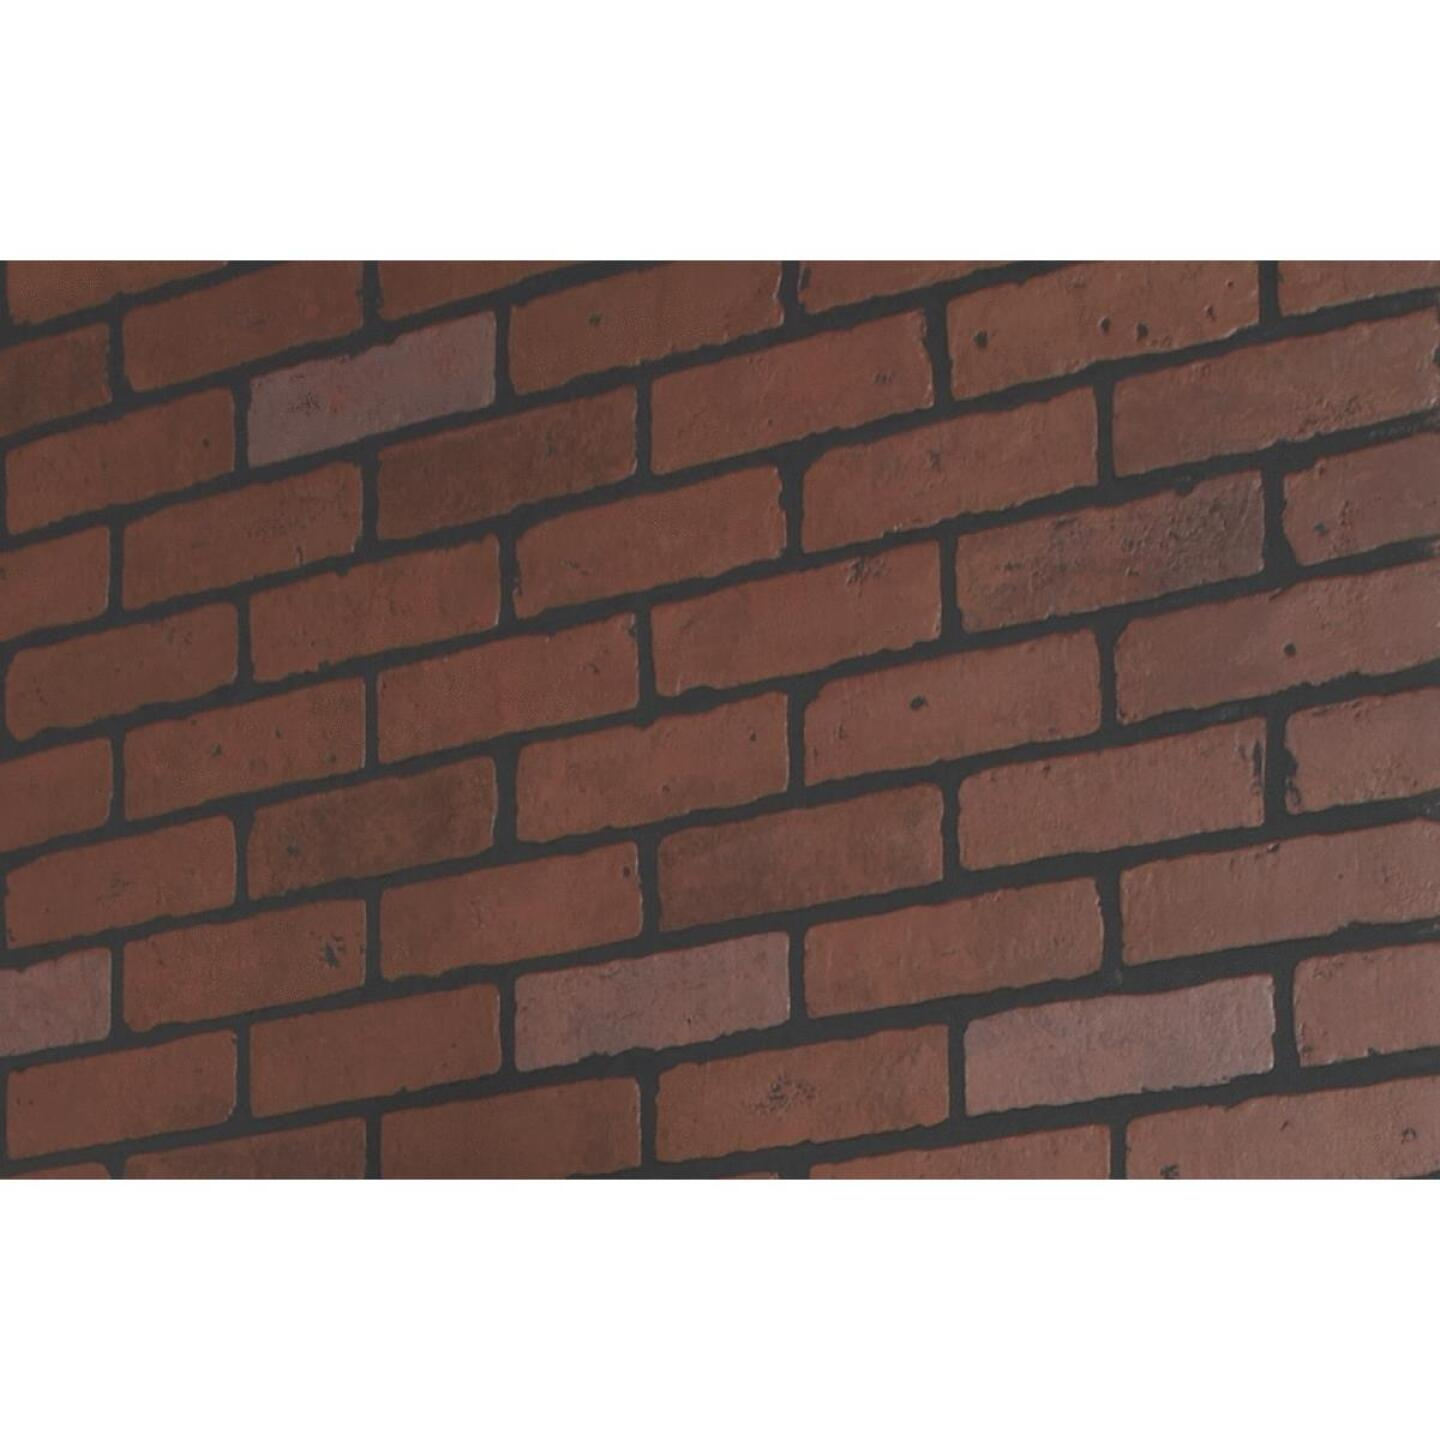 DPI 4 Ft. x 8 Ft. x 1/4 In. Red Brick Gaslight II Wall Paneling Image 2